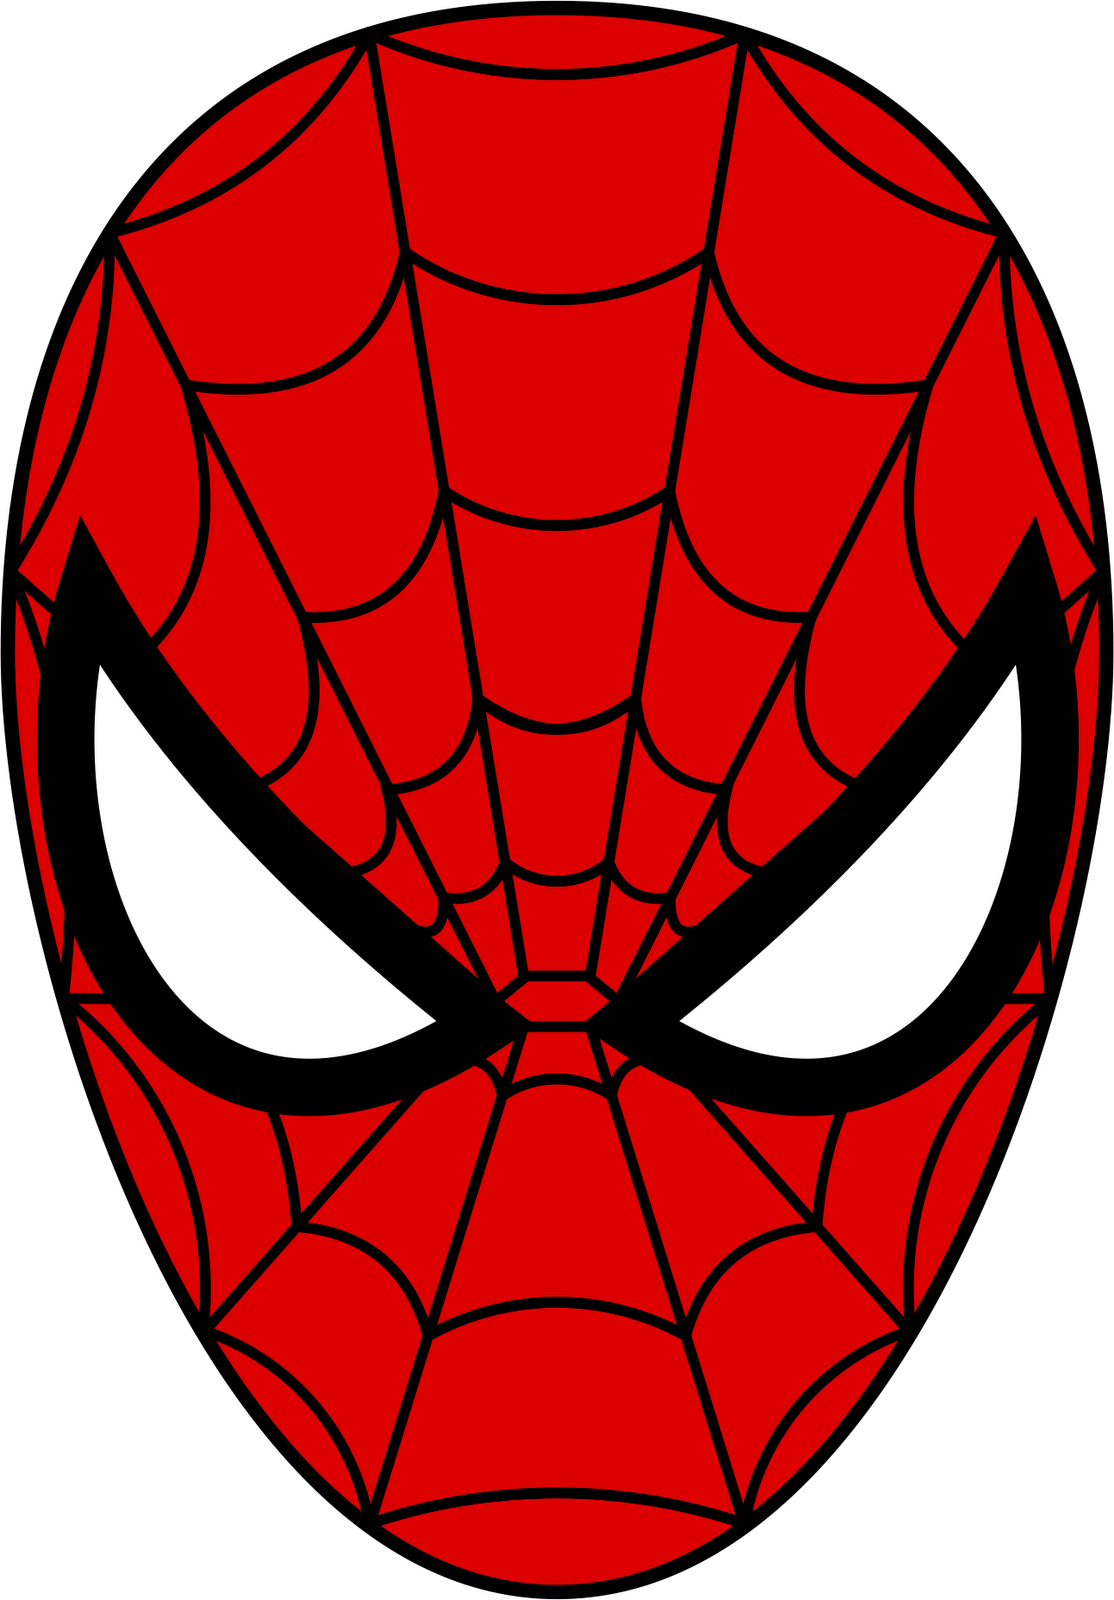 spiderman face drawing at getdrawings com free for personal use rh getdrawings com